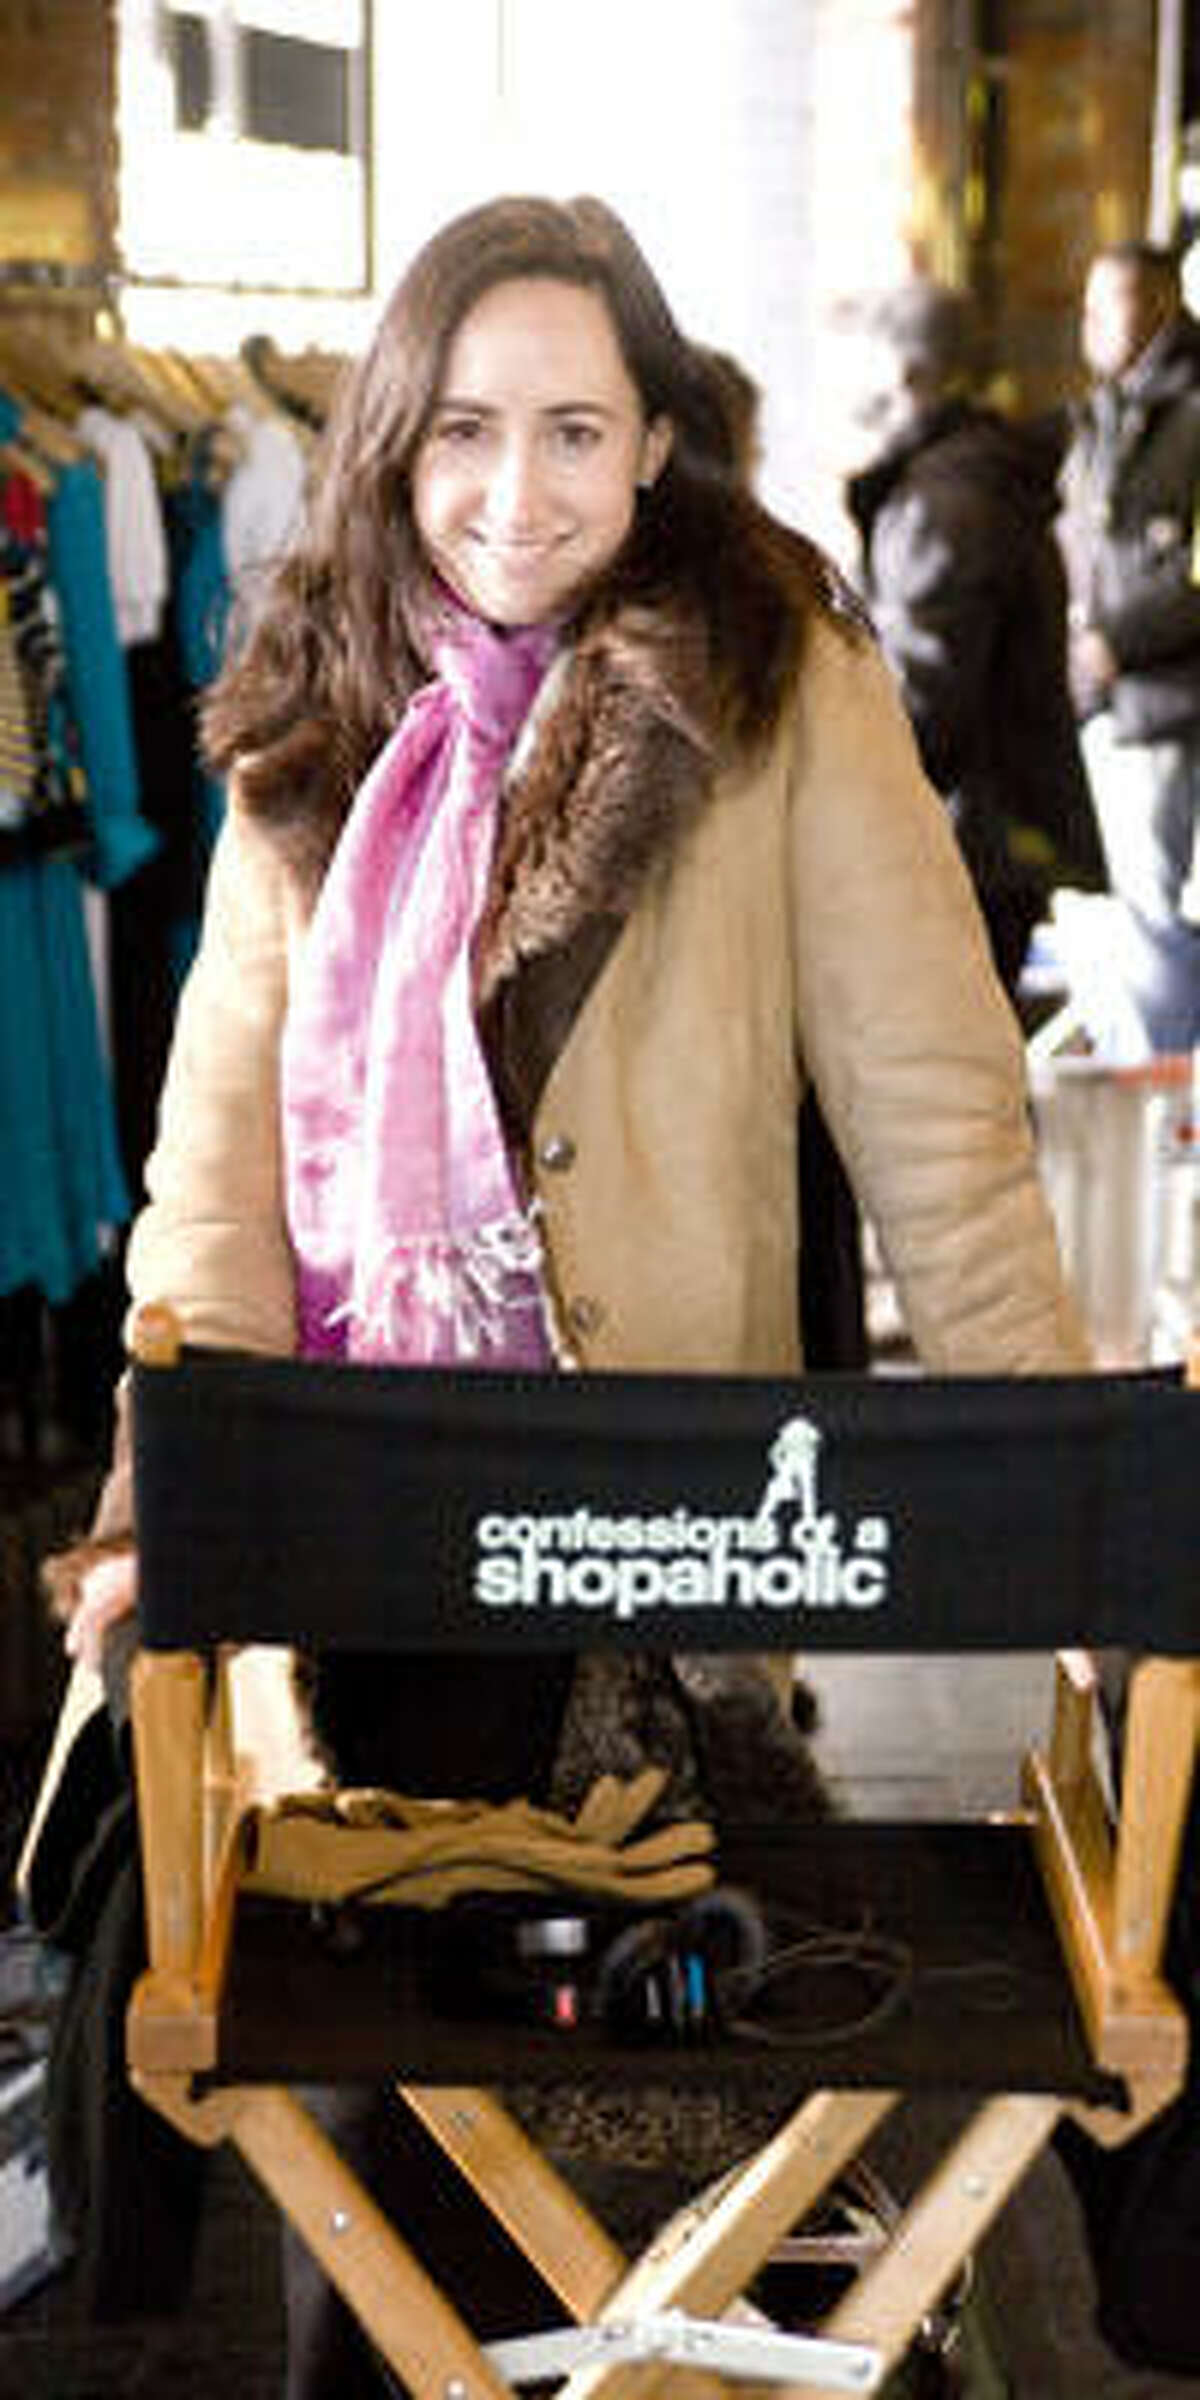 Madeline Wickham is the author of Confessions of a Shopaholic.